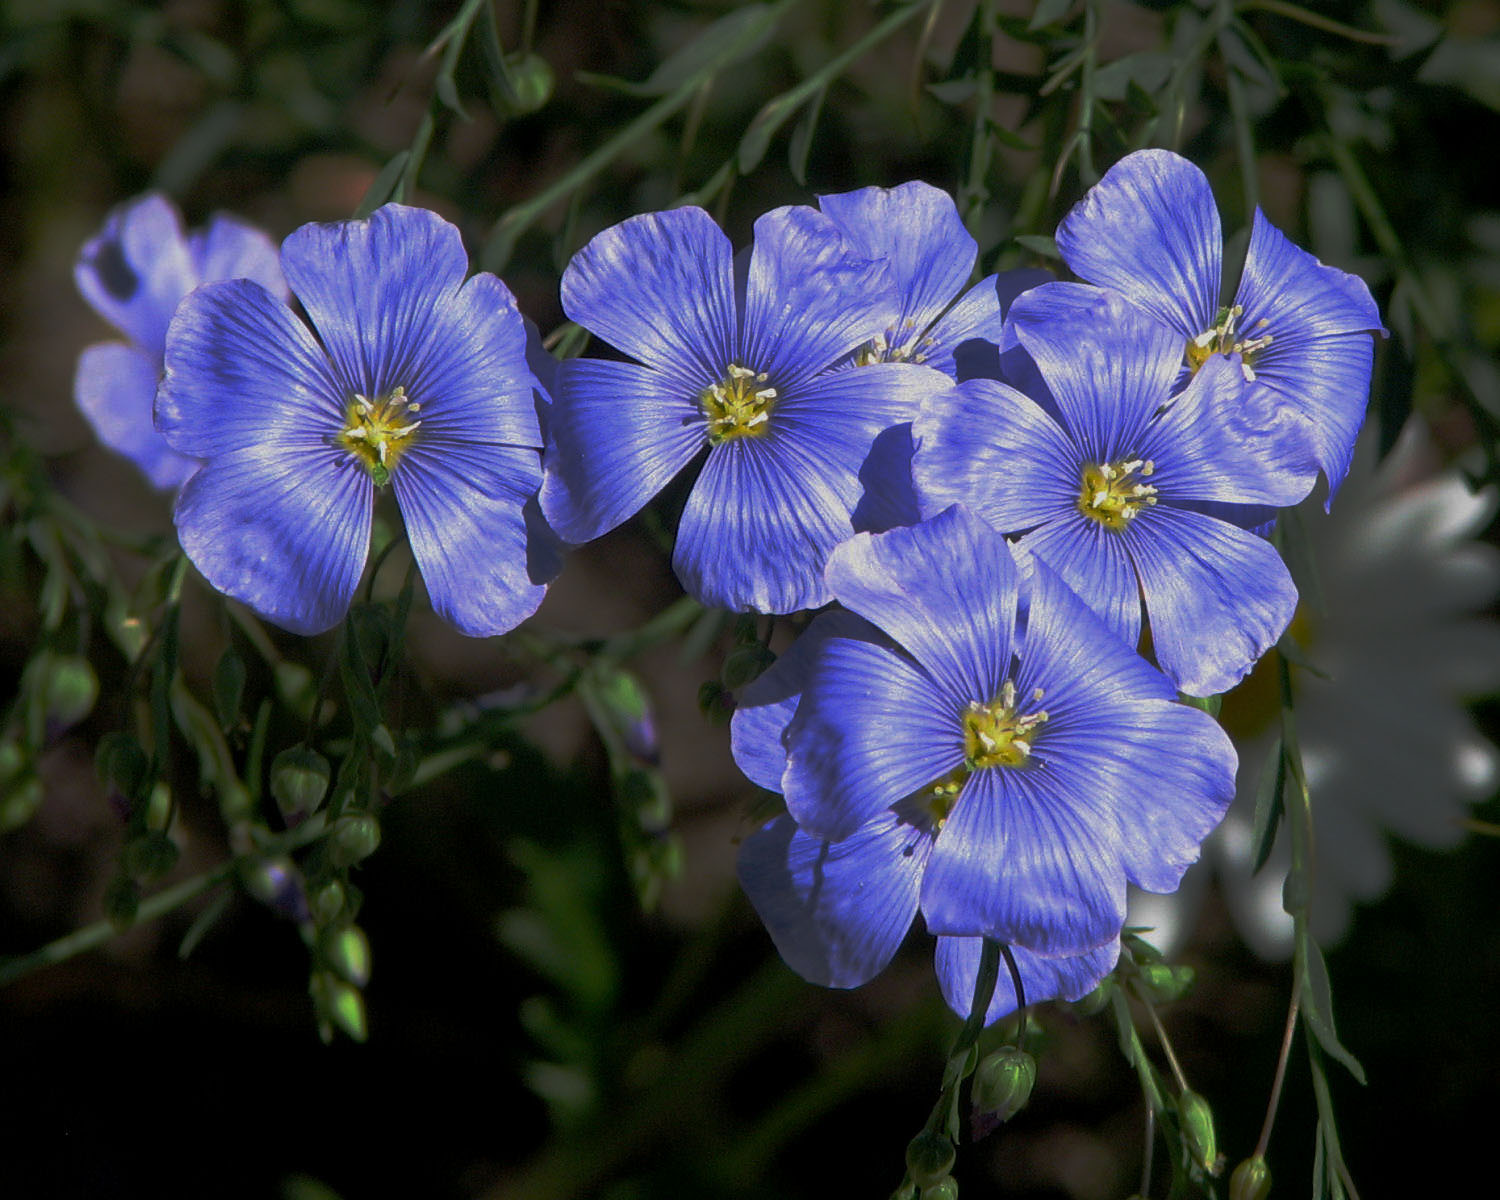 List of blue flowers 13 widescreen wallpaper hdflowerwallpaper download convert view source tagged on list of blue flowers izmirmasajfo